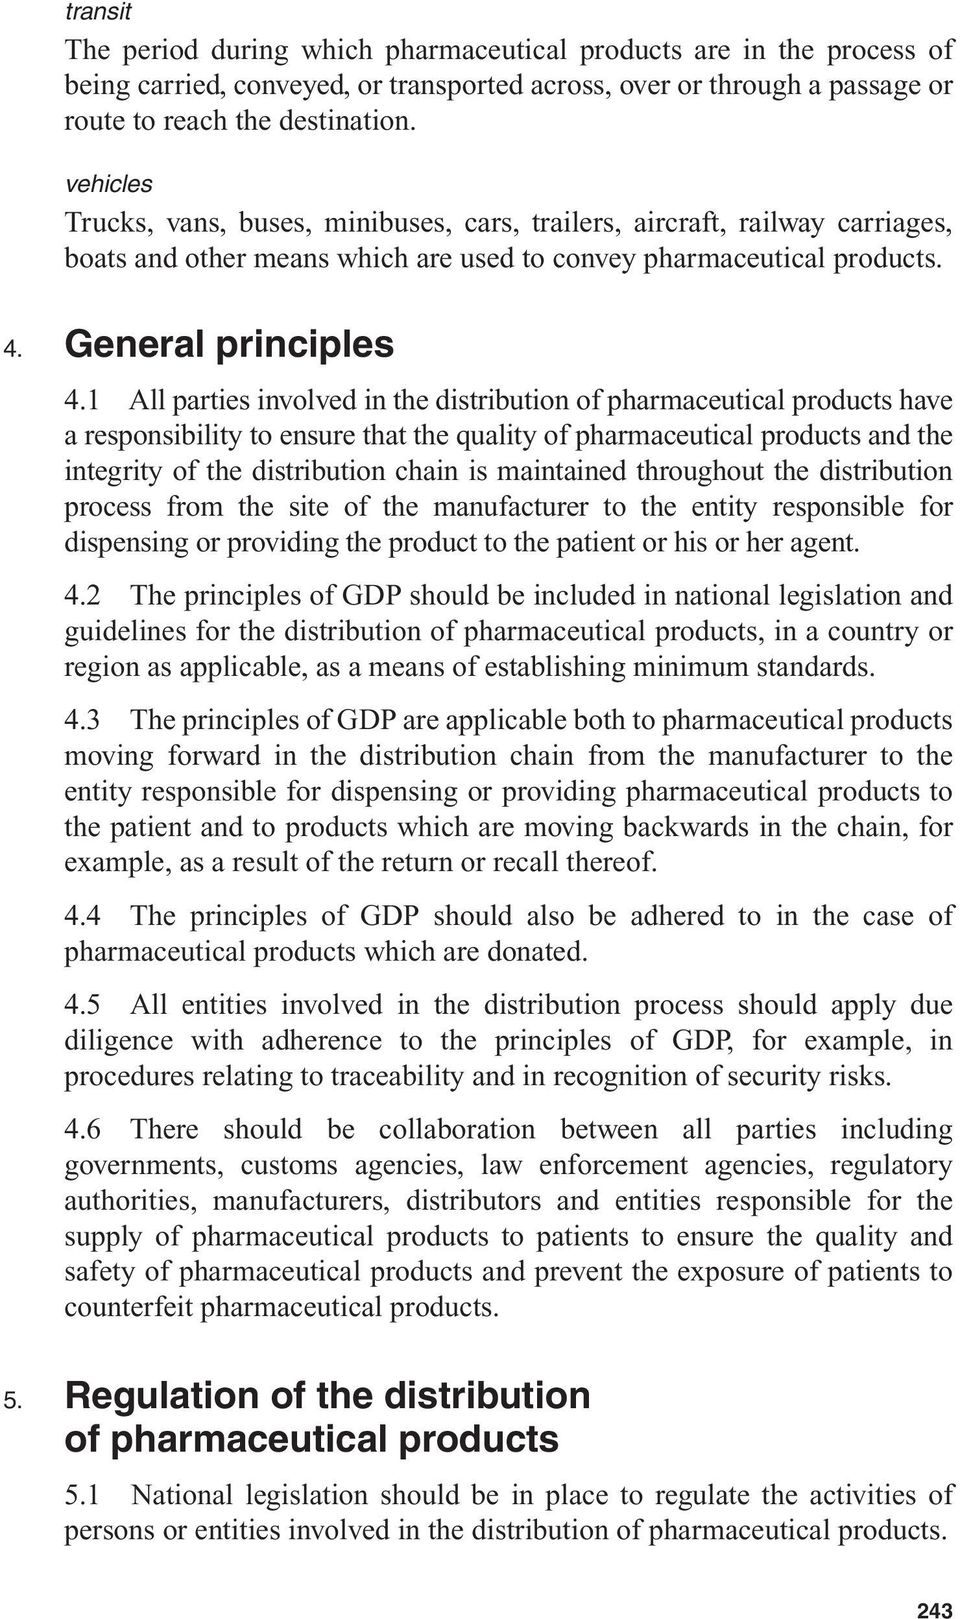 1 All parties involved in the distribution of pharmaceutical products have a responsibility to ensure that the quality of pharmaceutical products and the integrity of the distribution chain is